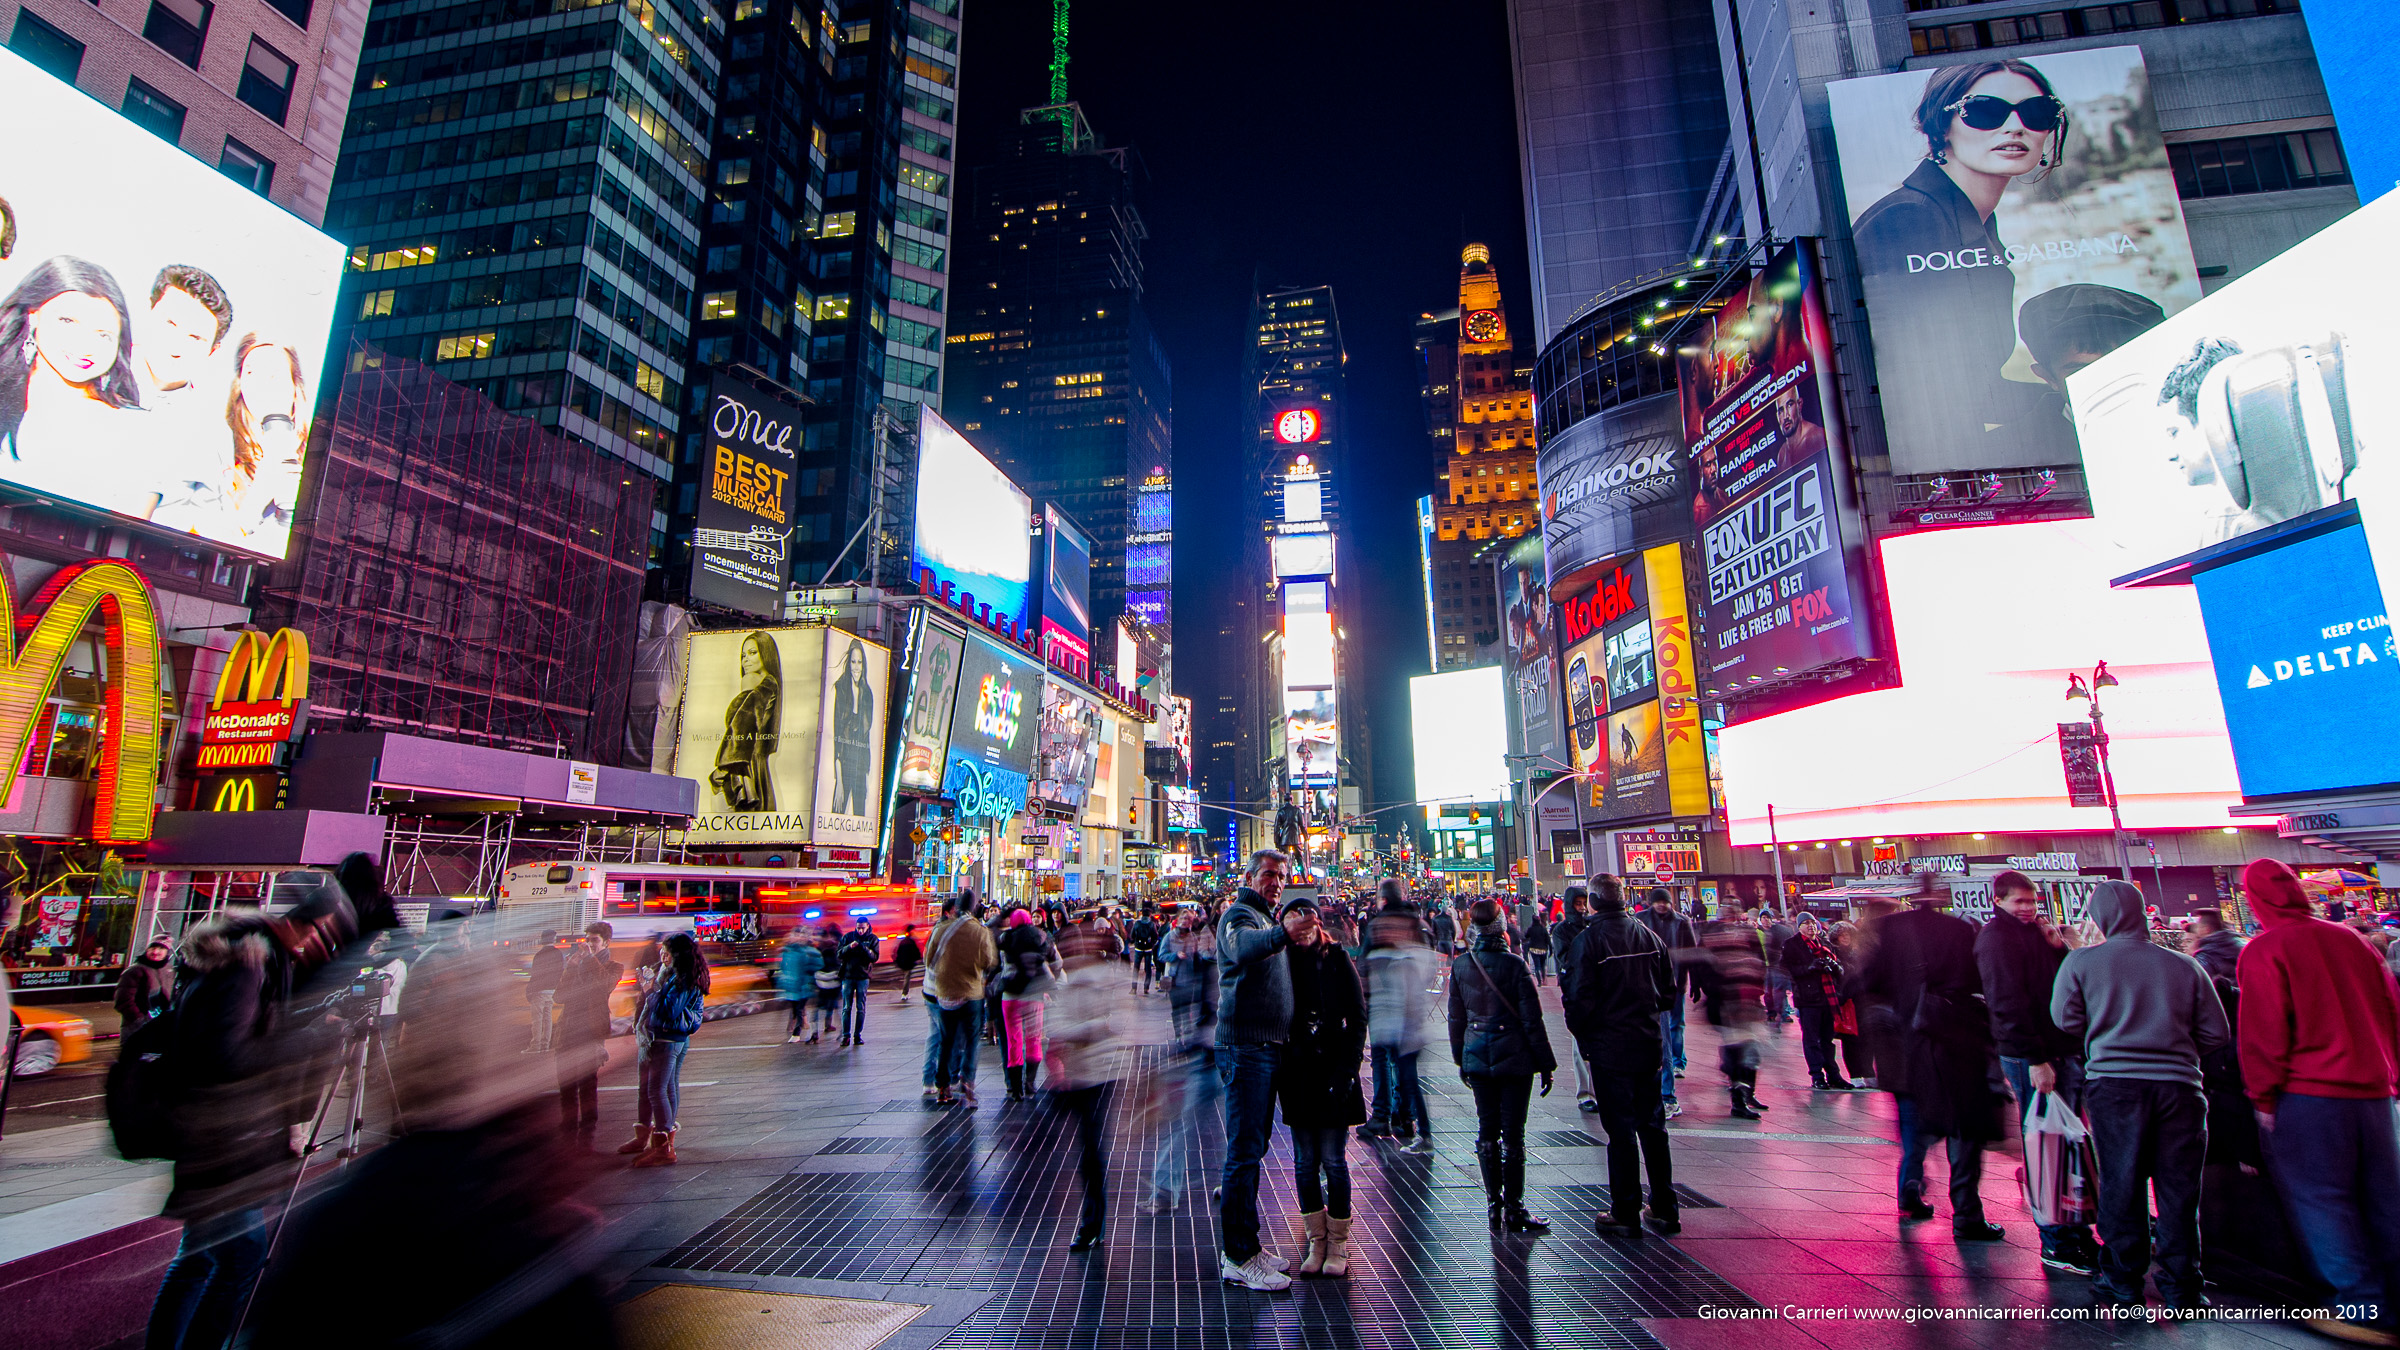 Times Square is a major commercial intersection and a neighborhood in Midtown Manhattan, New York City, at the junction of Broadway (now converted into a pedestrian plaza) and Seventh Avenue and stretching from West 42nd to West 47th Streets.